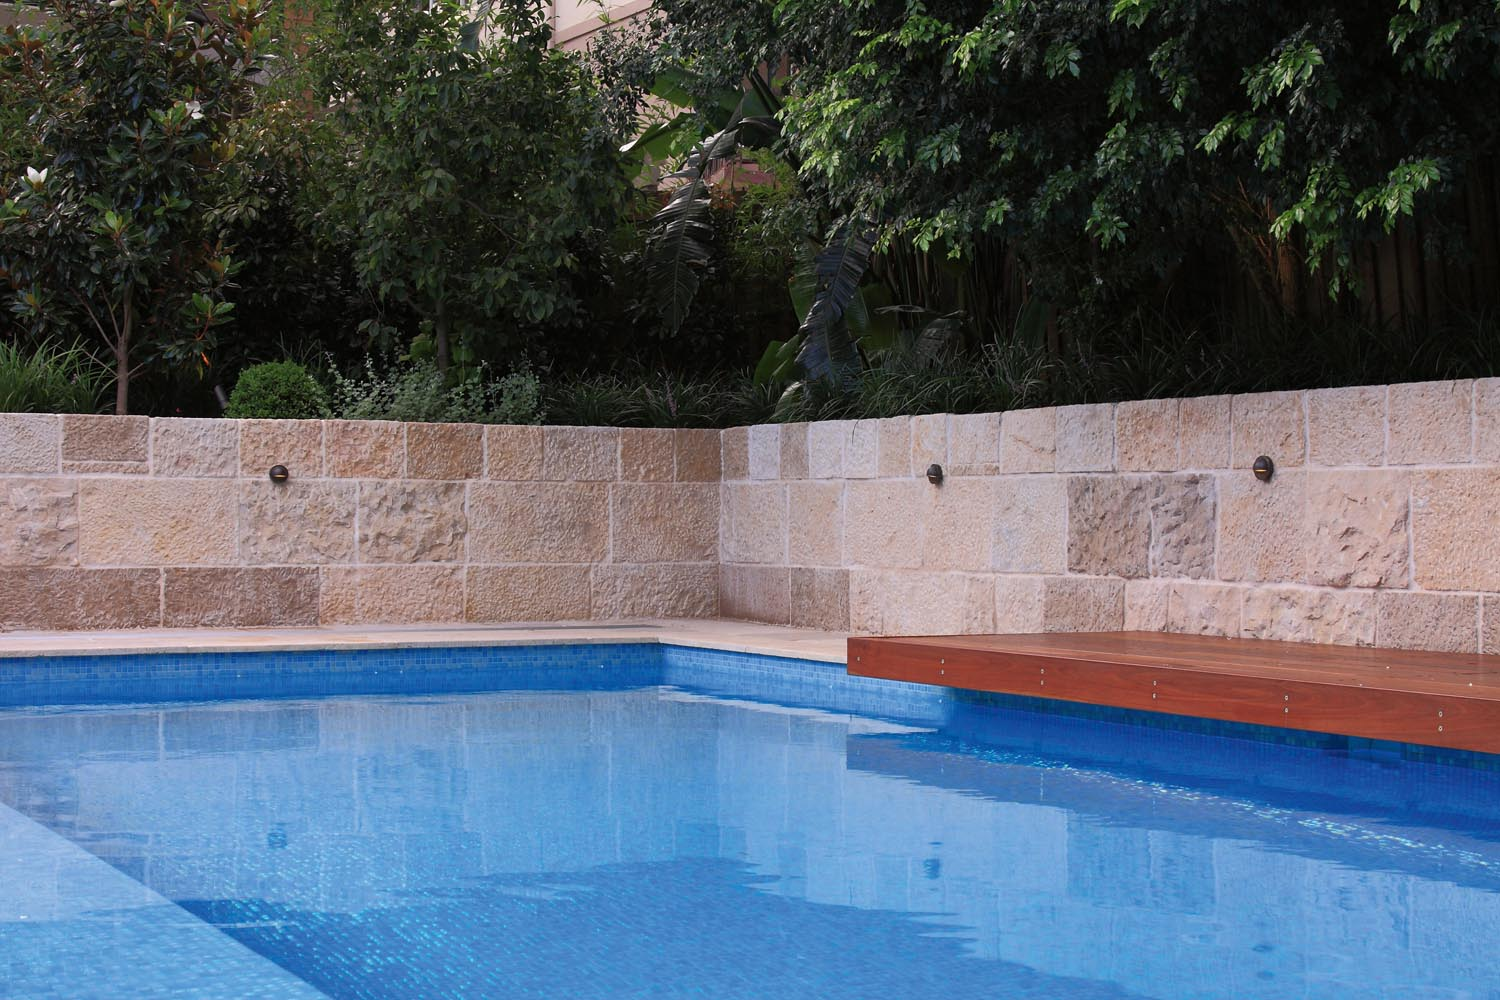 A modern pool next to a wall and a bench